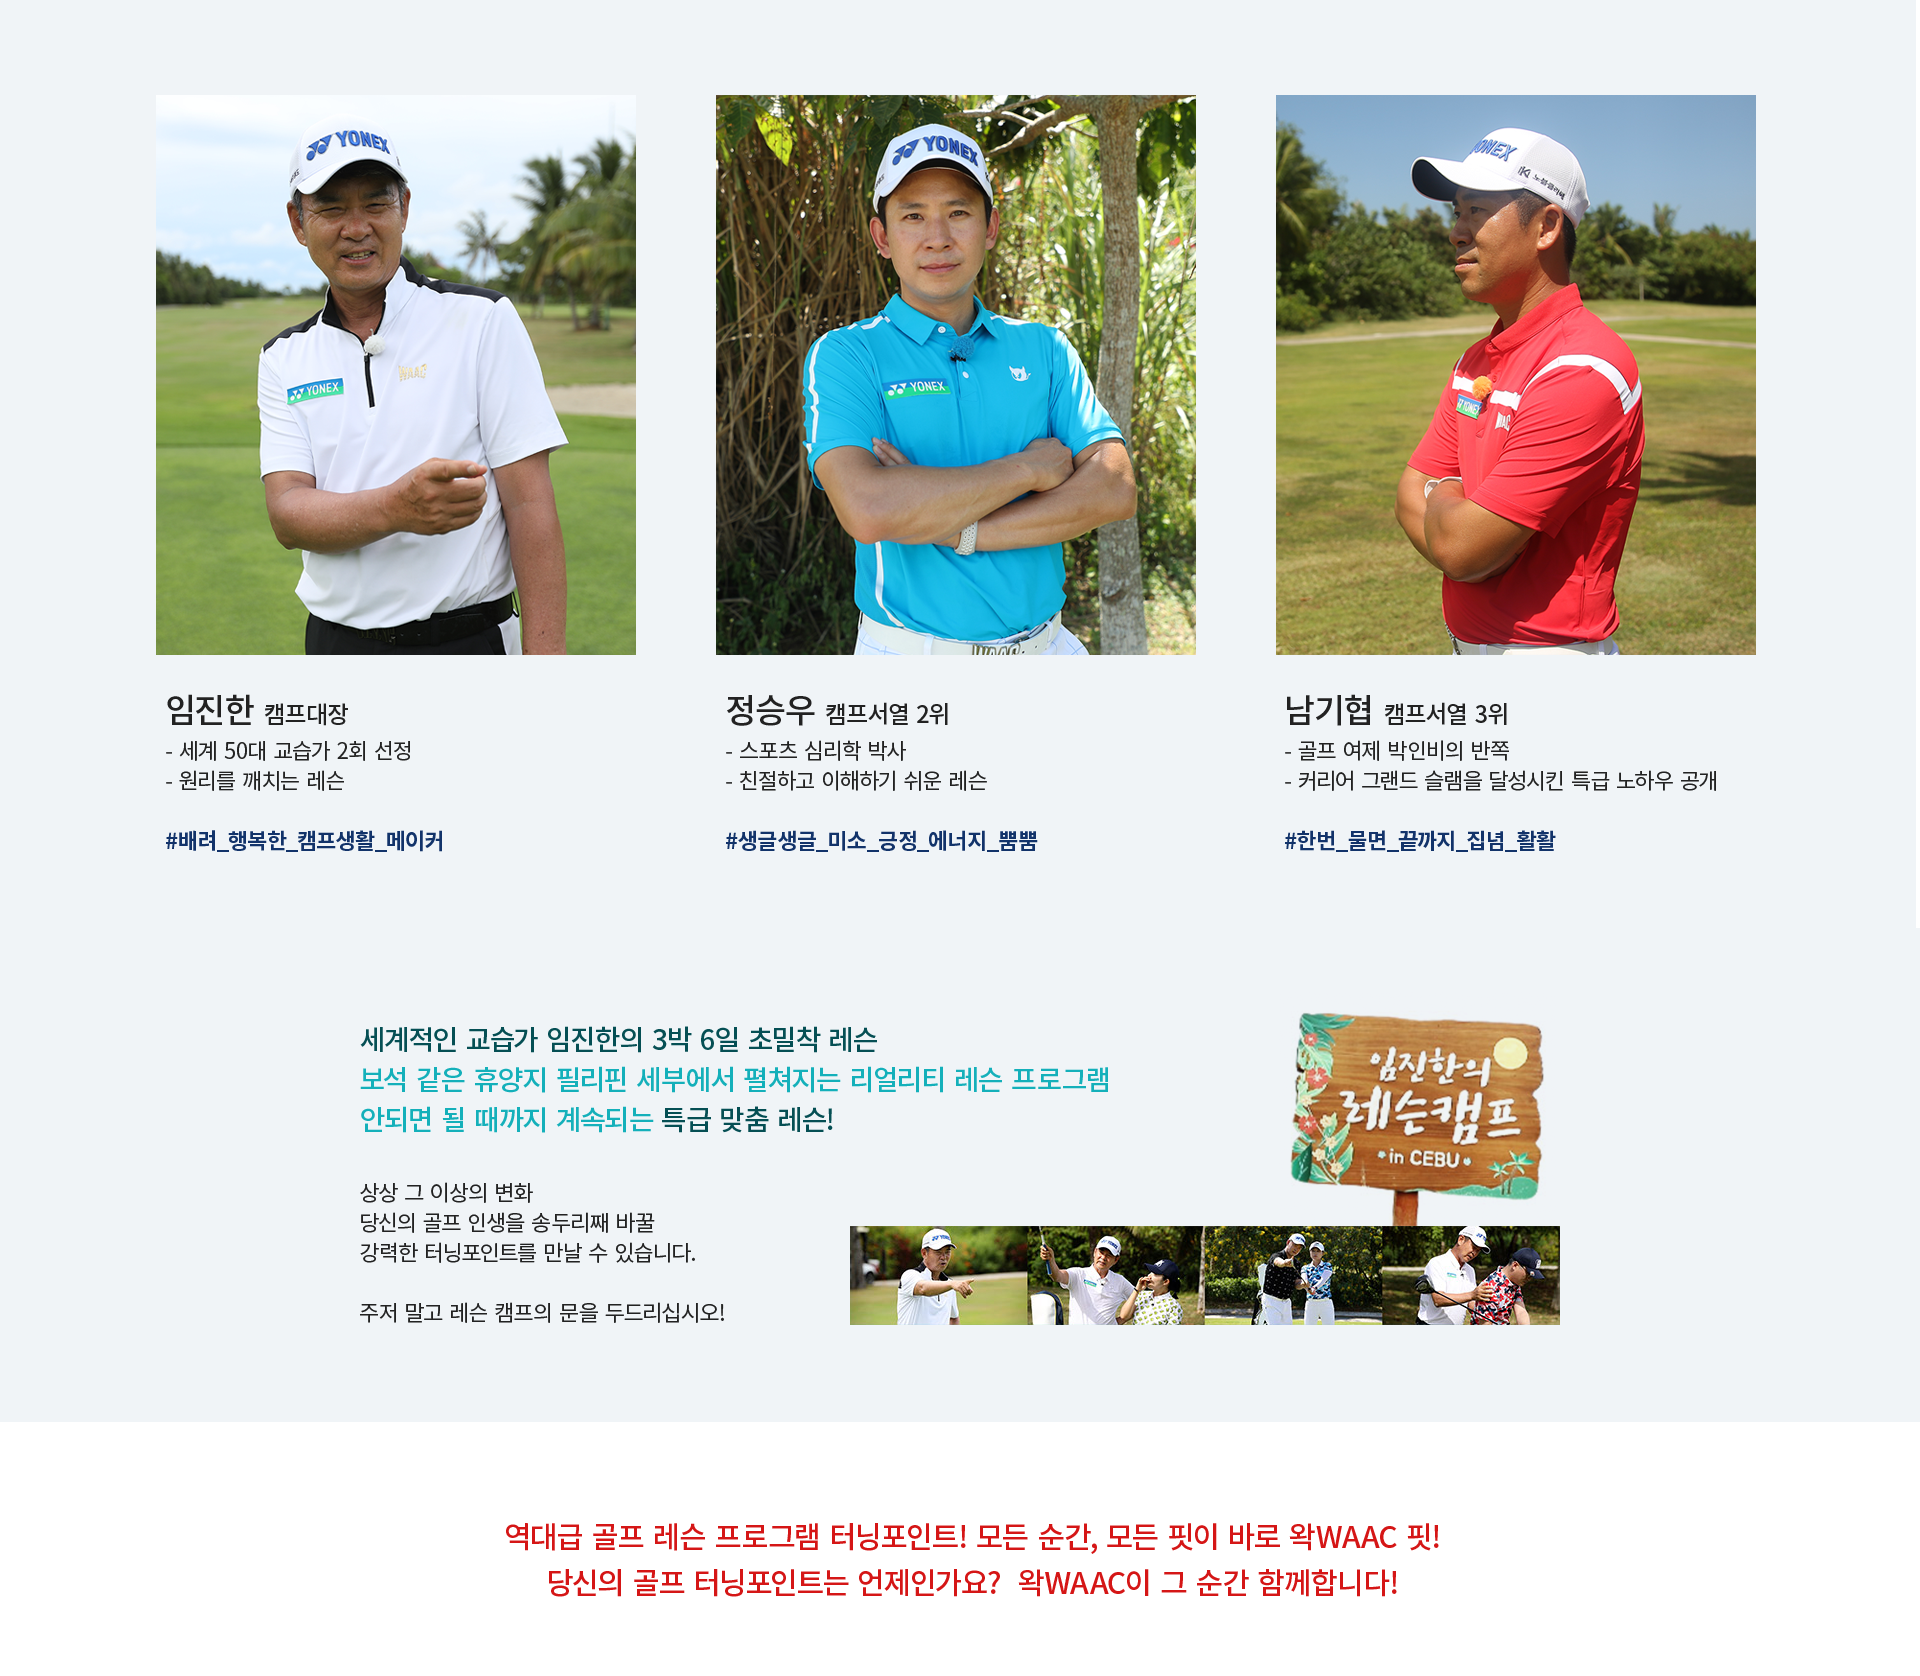 김지현의 Winners Camp